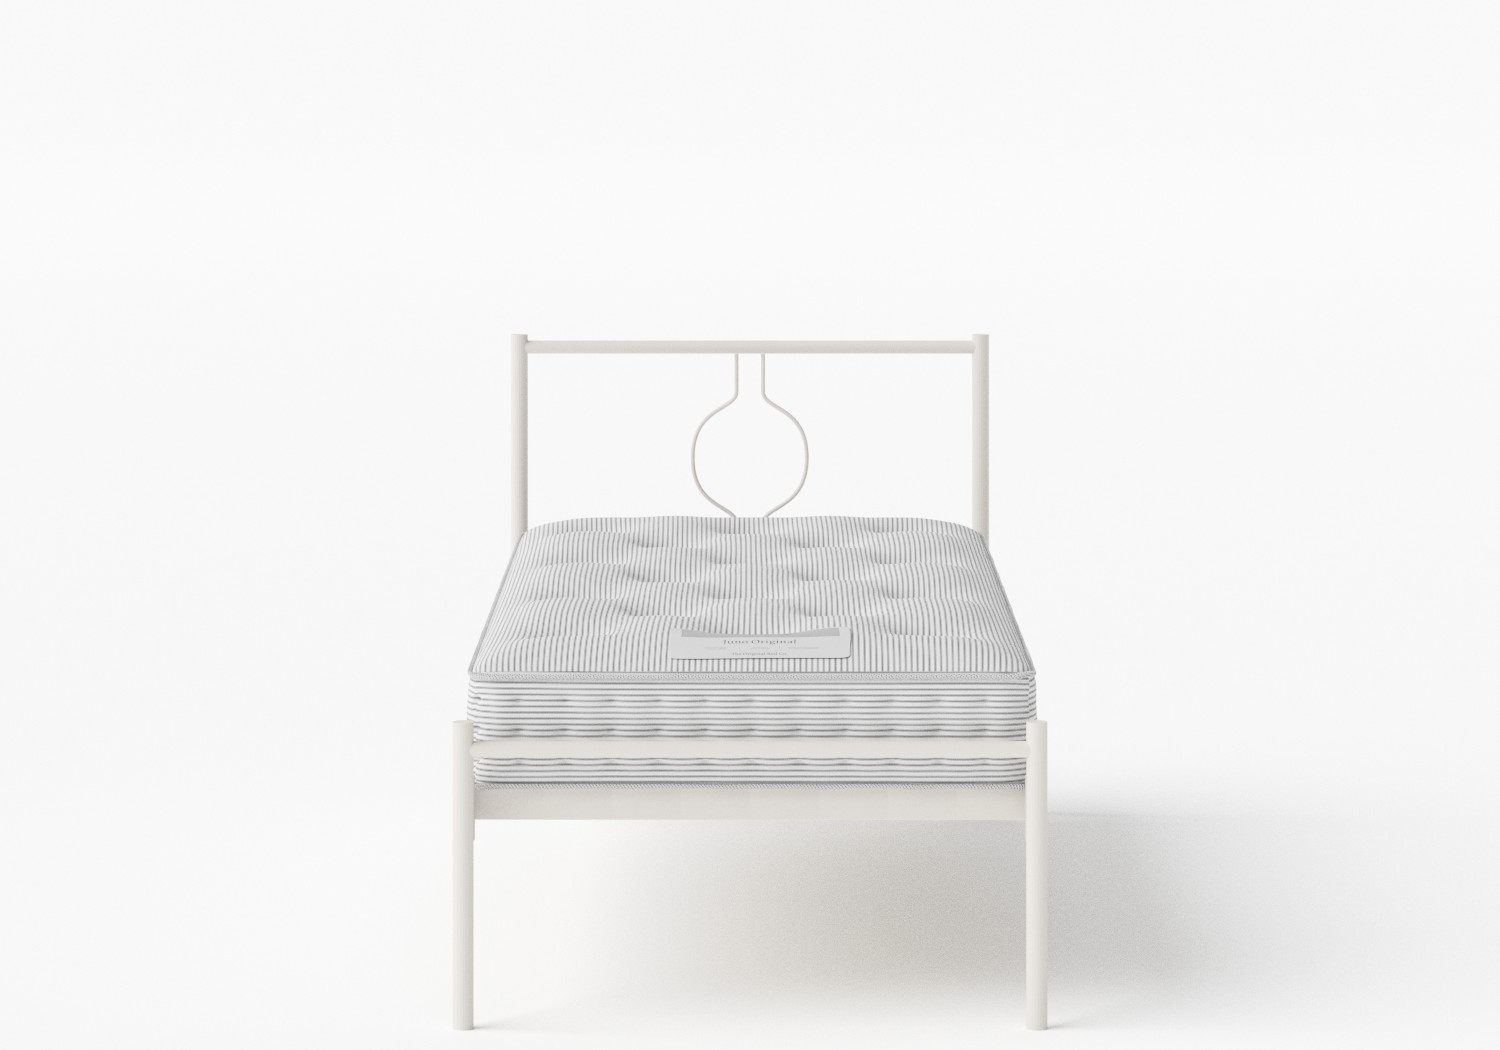 Meiji Single Iron/Metal Bed in Glossy Ivory shown with Juno 1 mattress